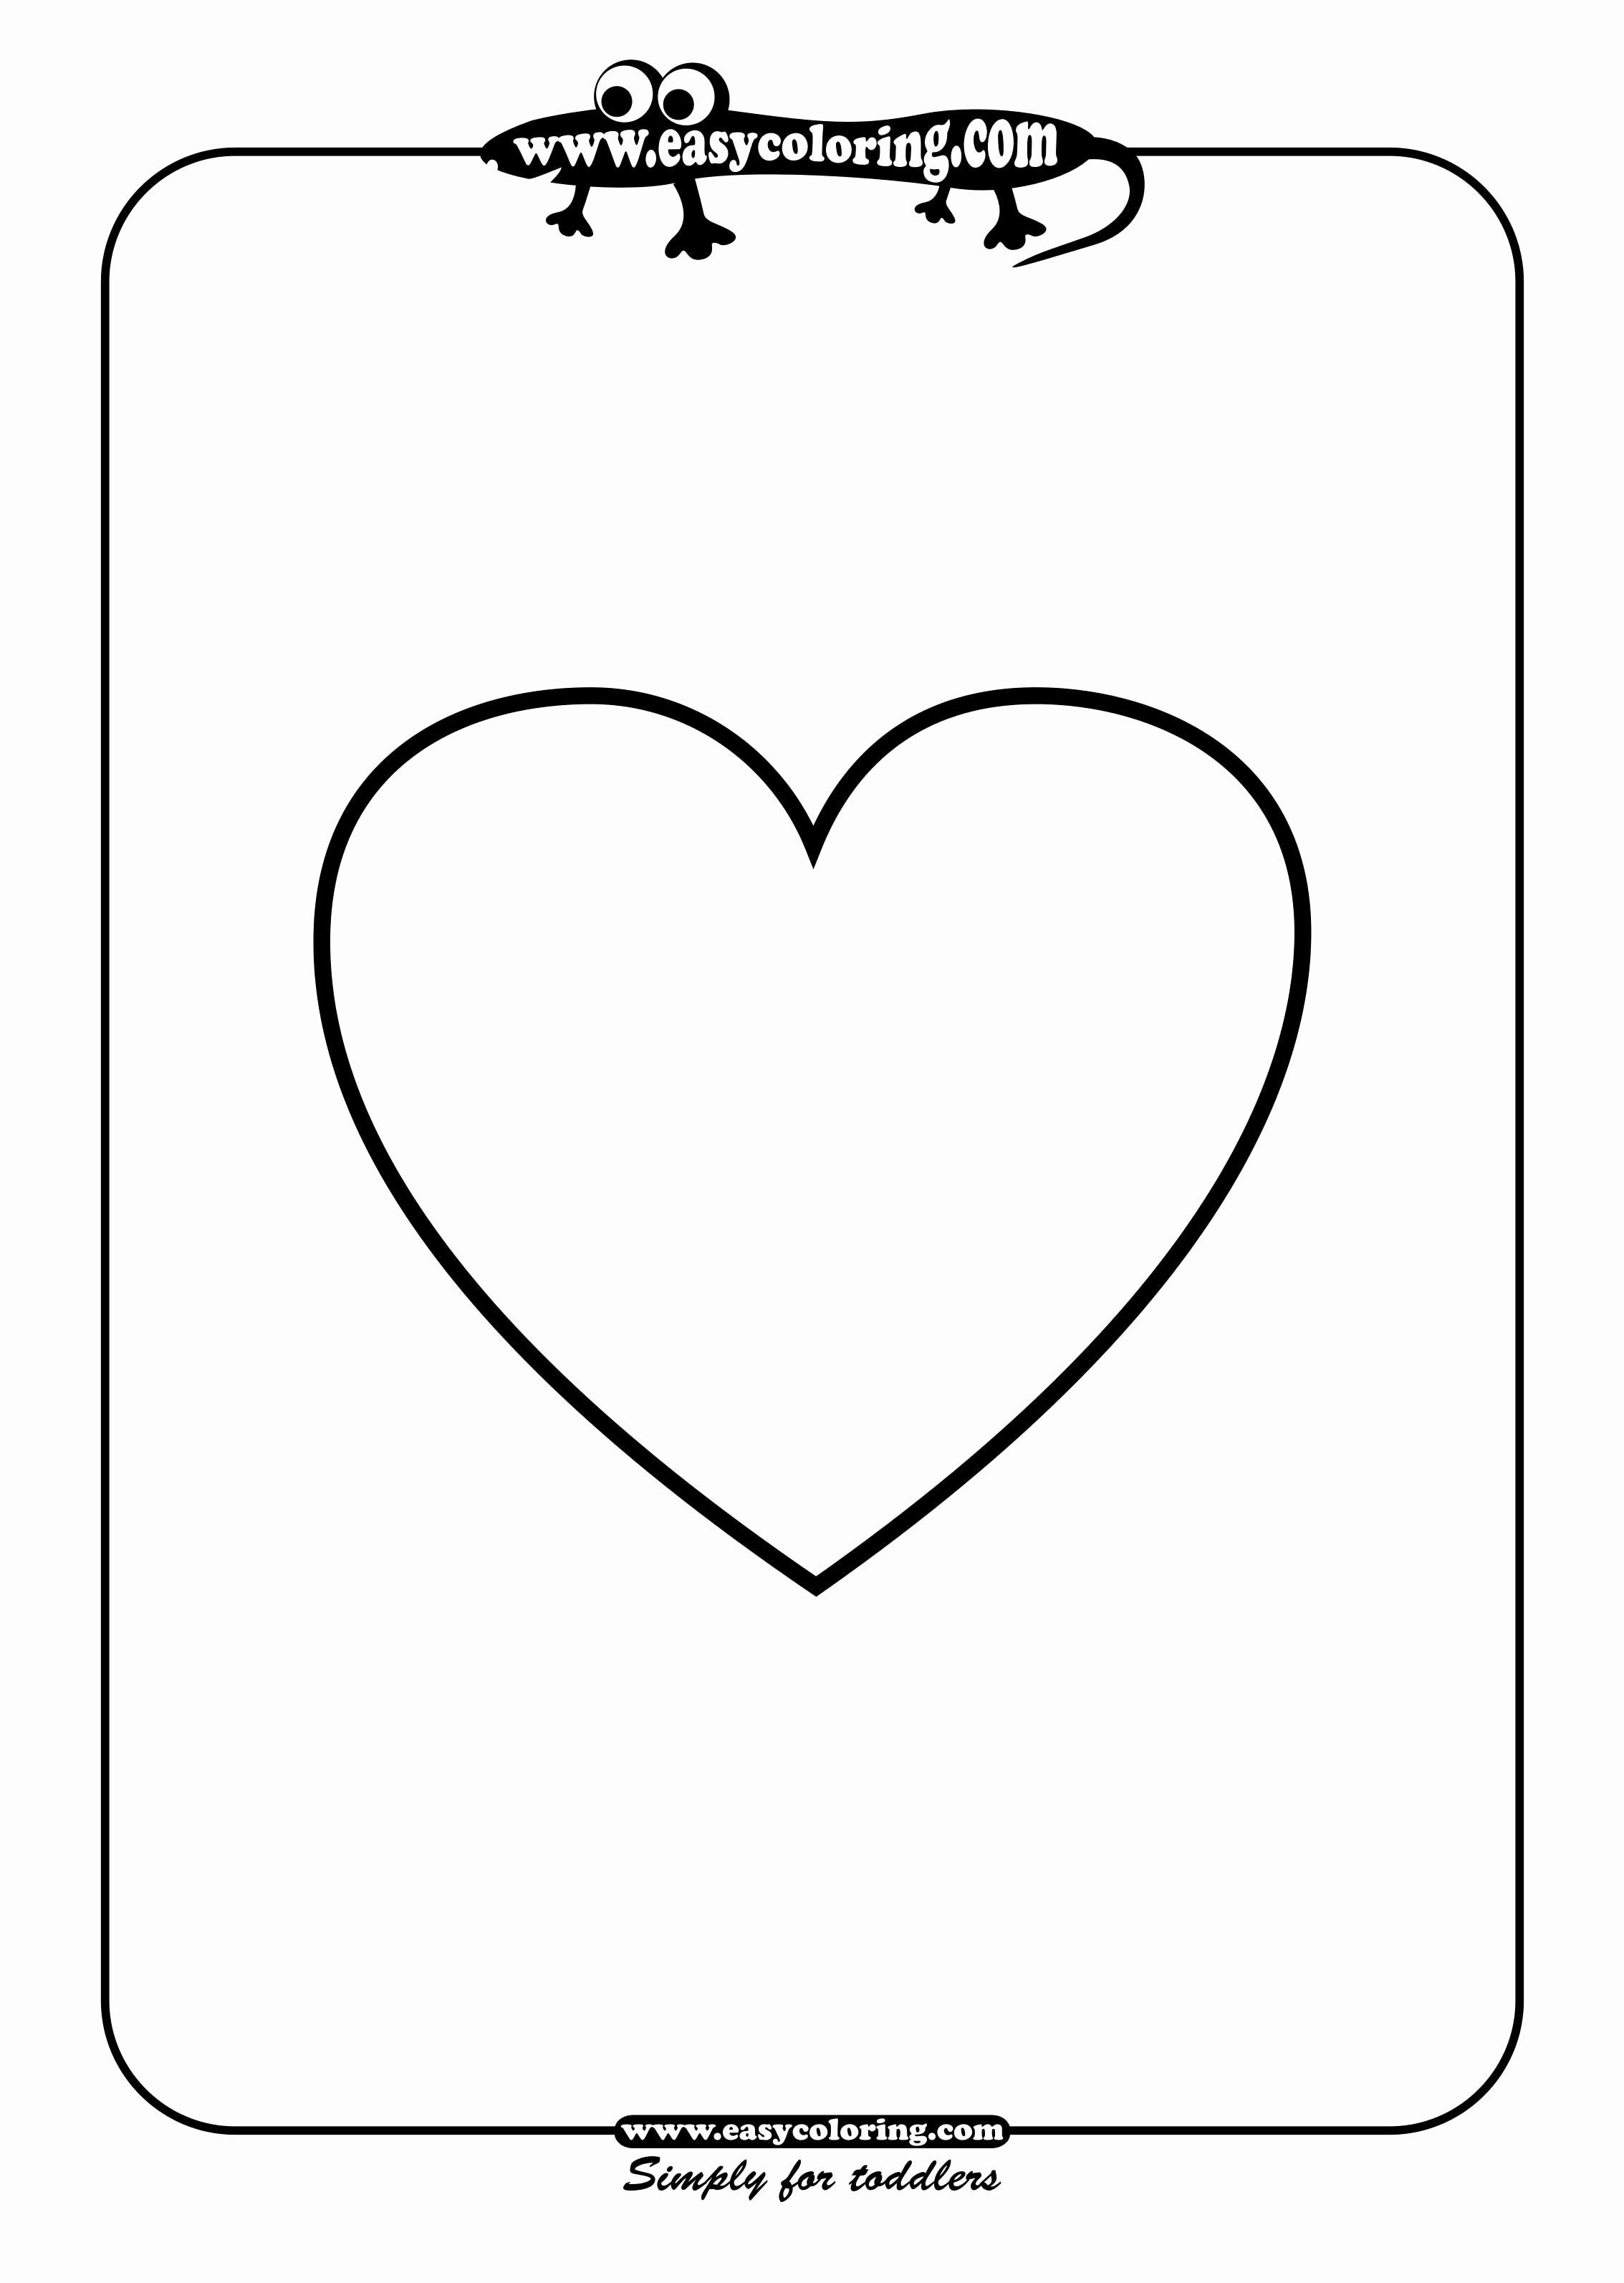 28 Heart Shape Coloring Page In 2020 Heart Coloring Pages